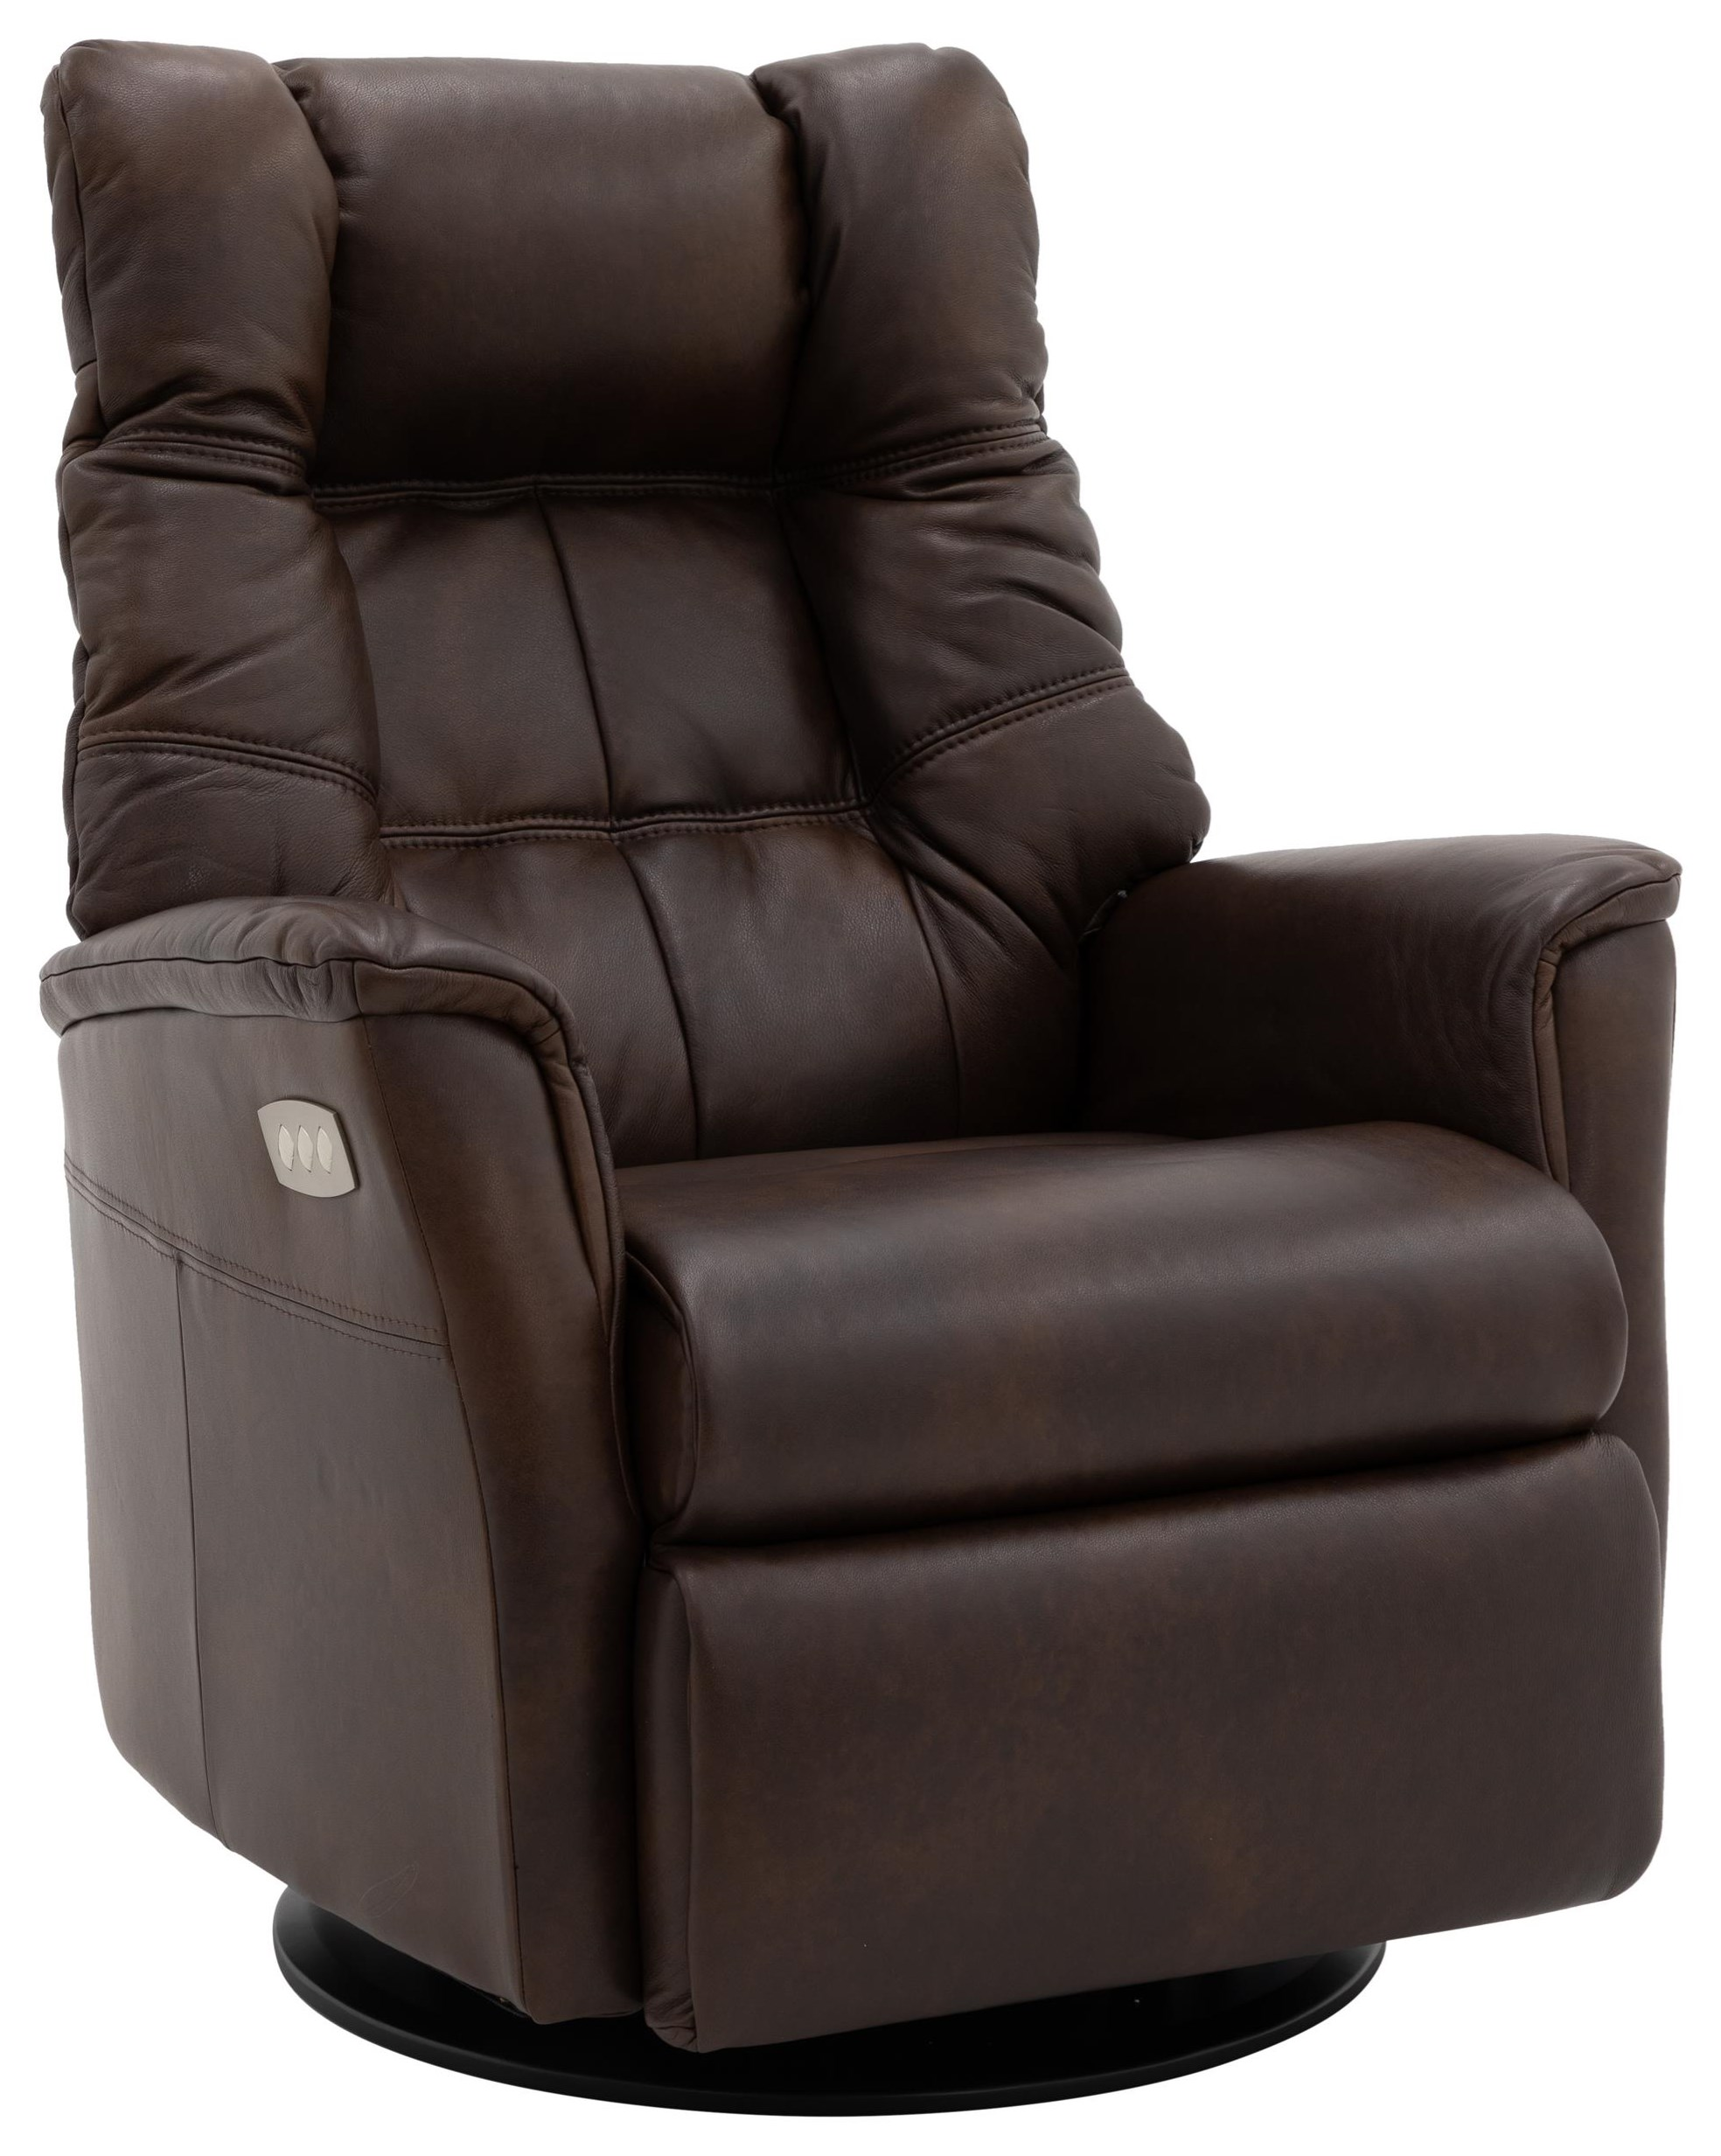 BOSTON Triple PWR Large Leather Recliner (Truffle) by Norwegian Comfort at Walker's Furniture